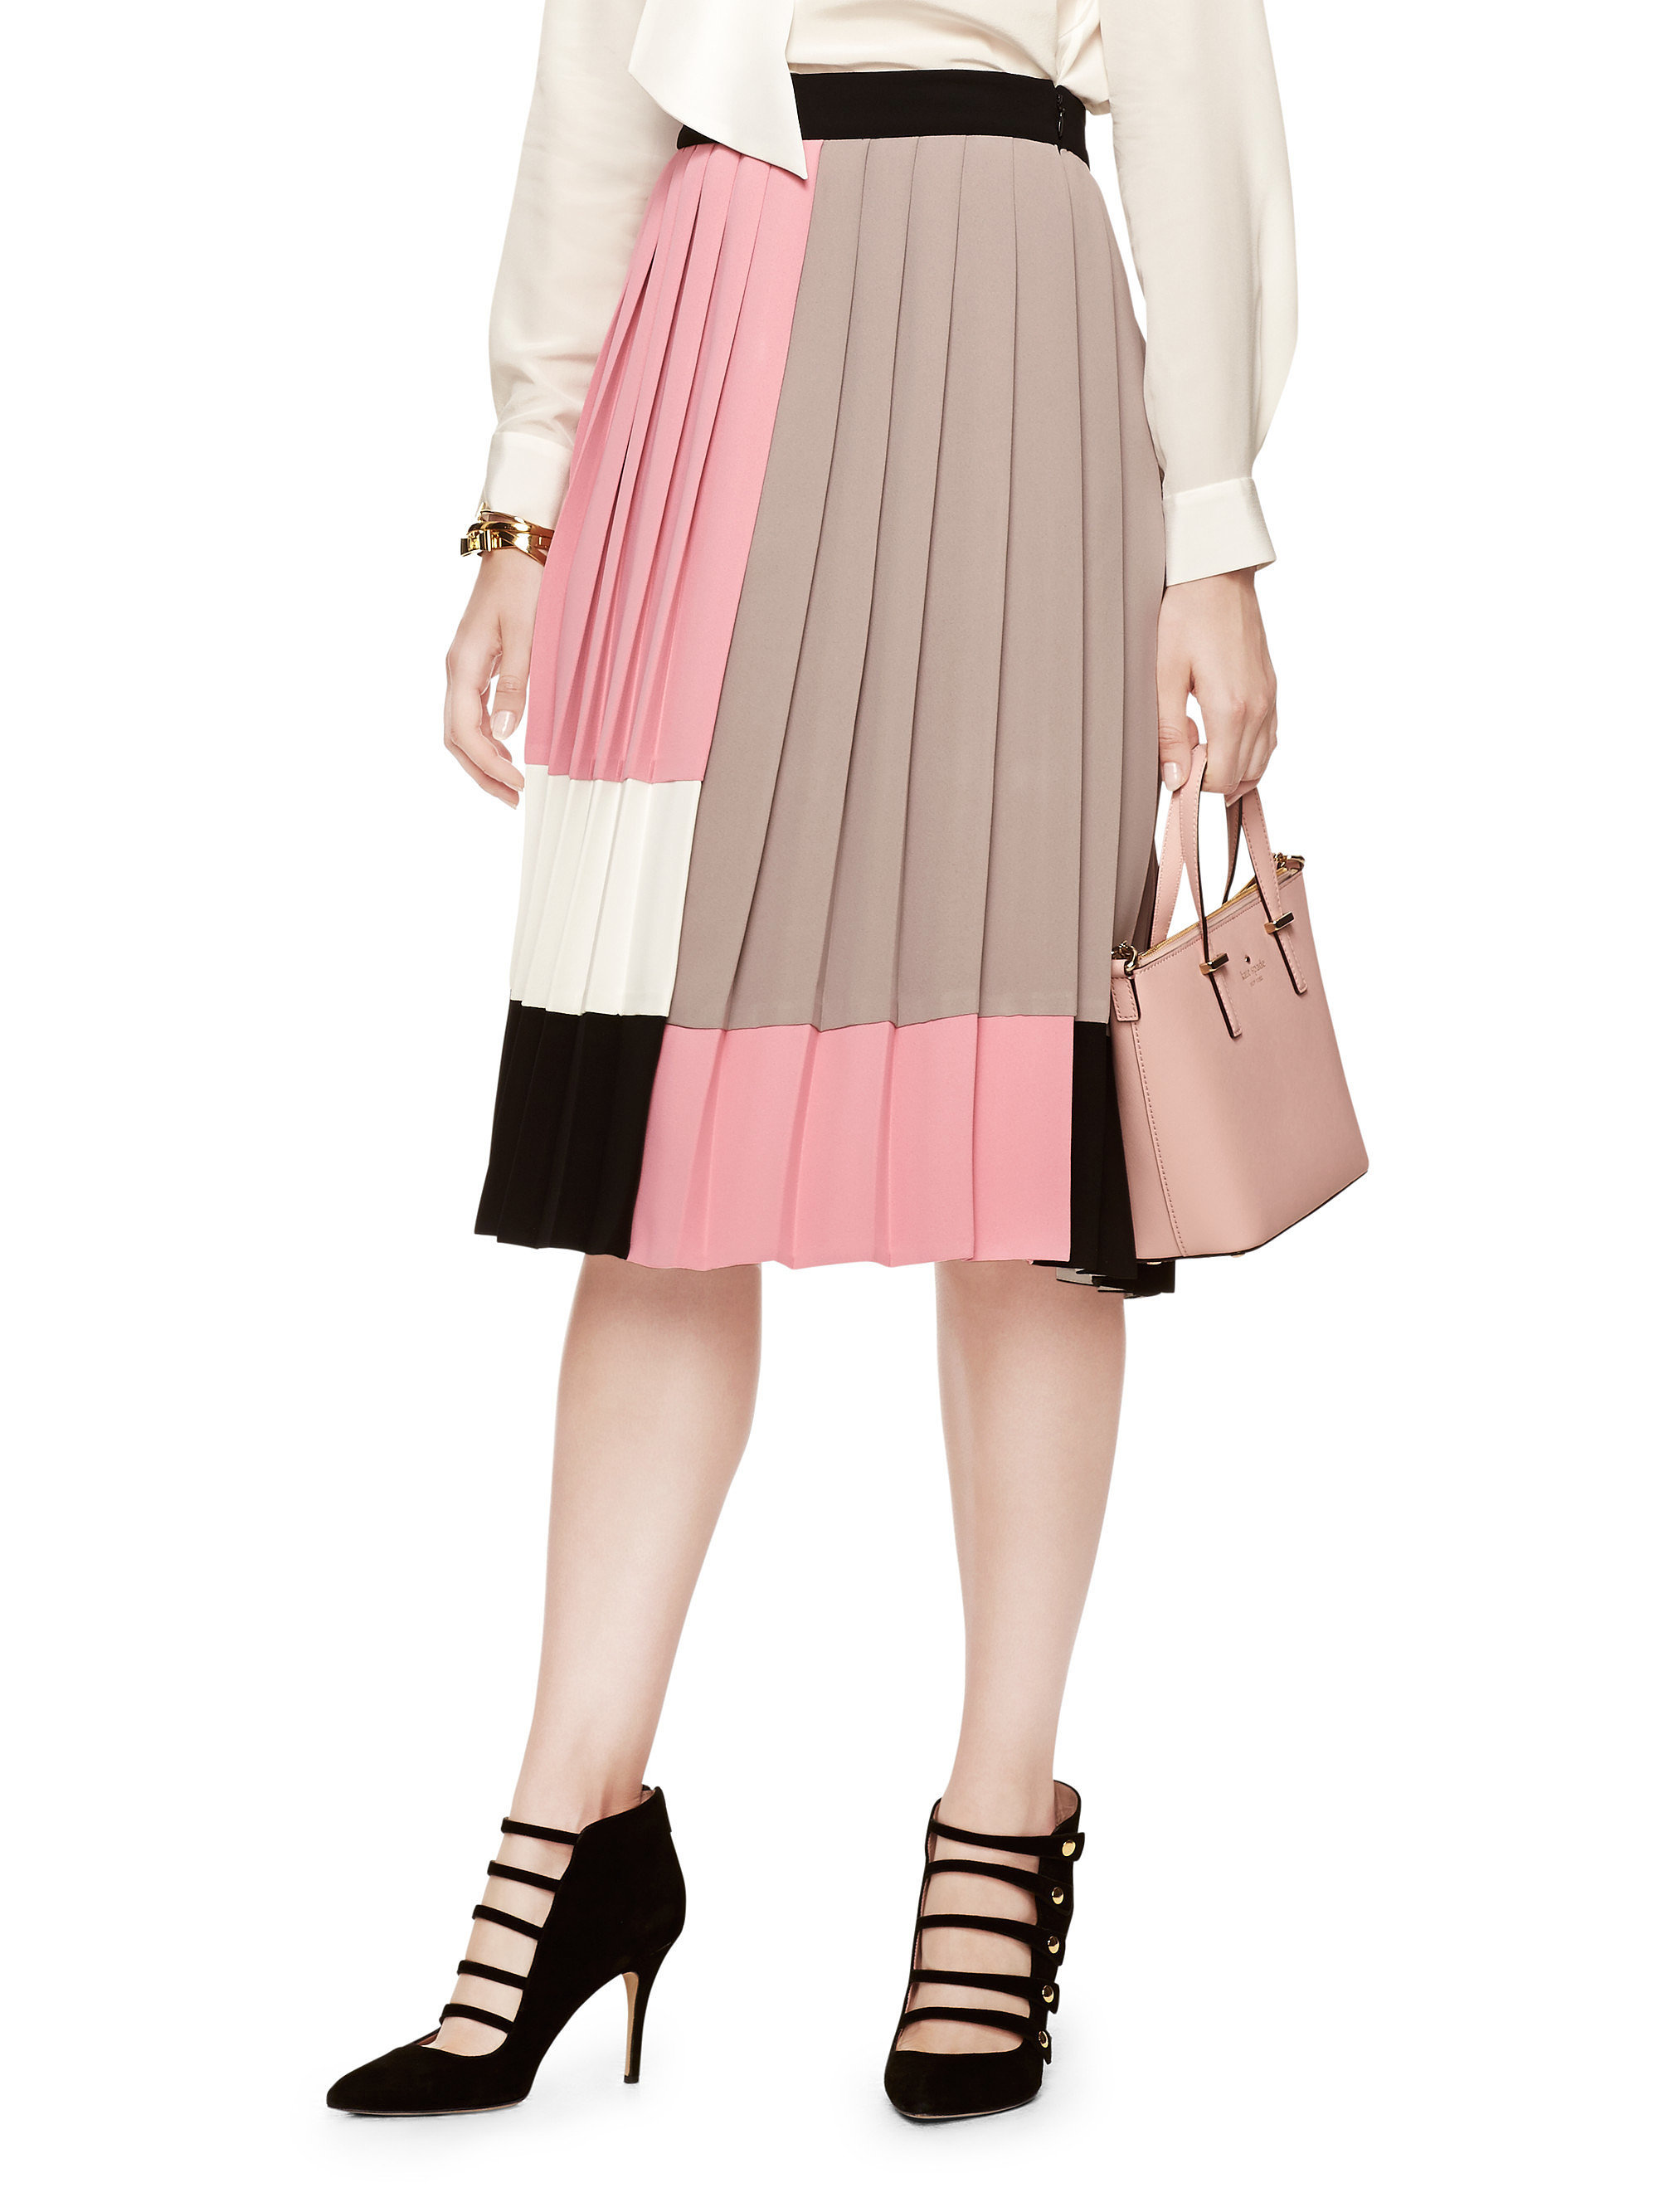 Kate Spade Colorblock pleated skirt ($328) | Michelle ...